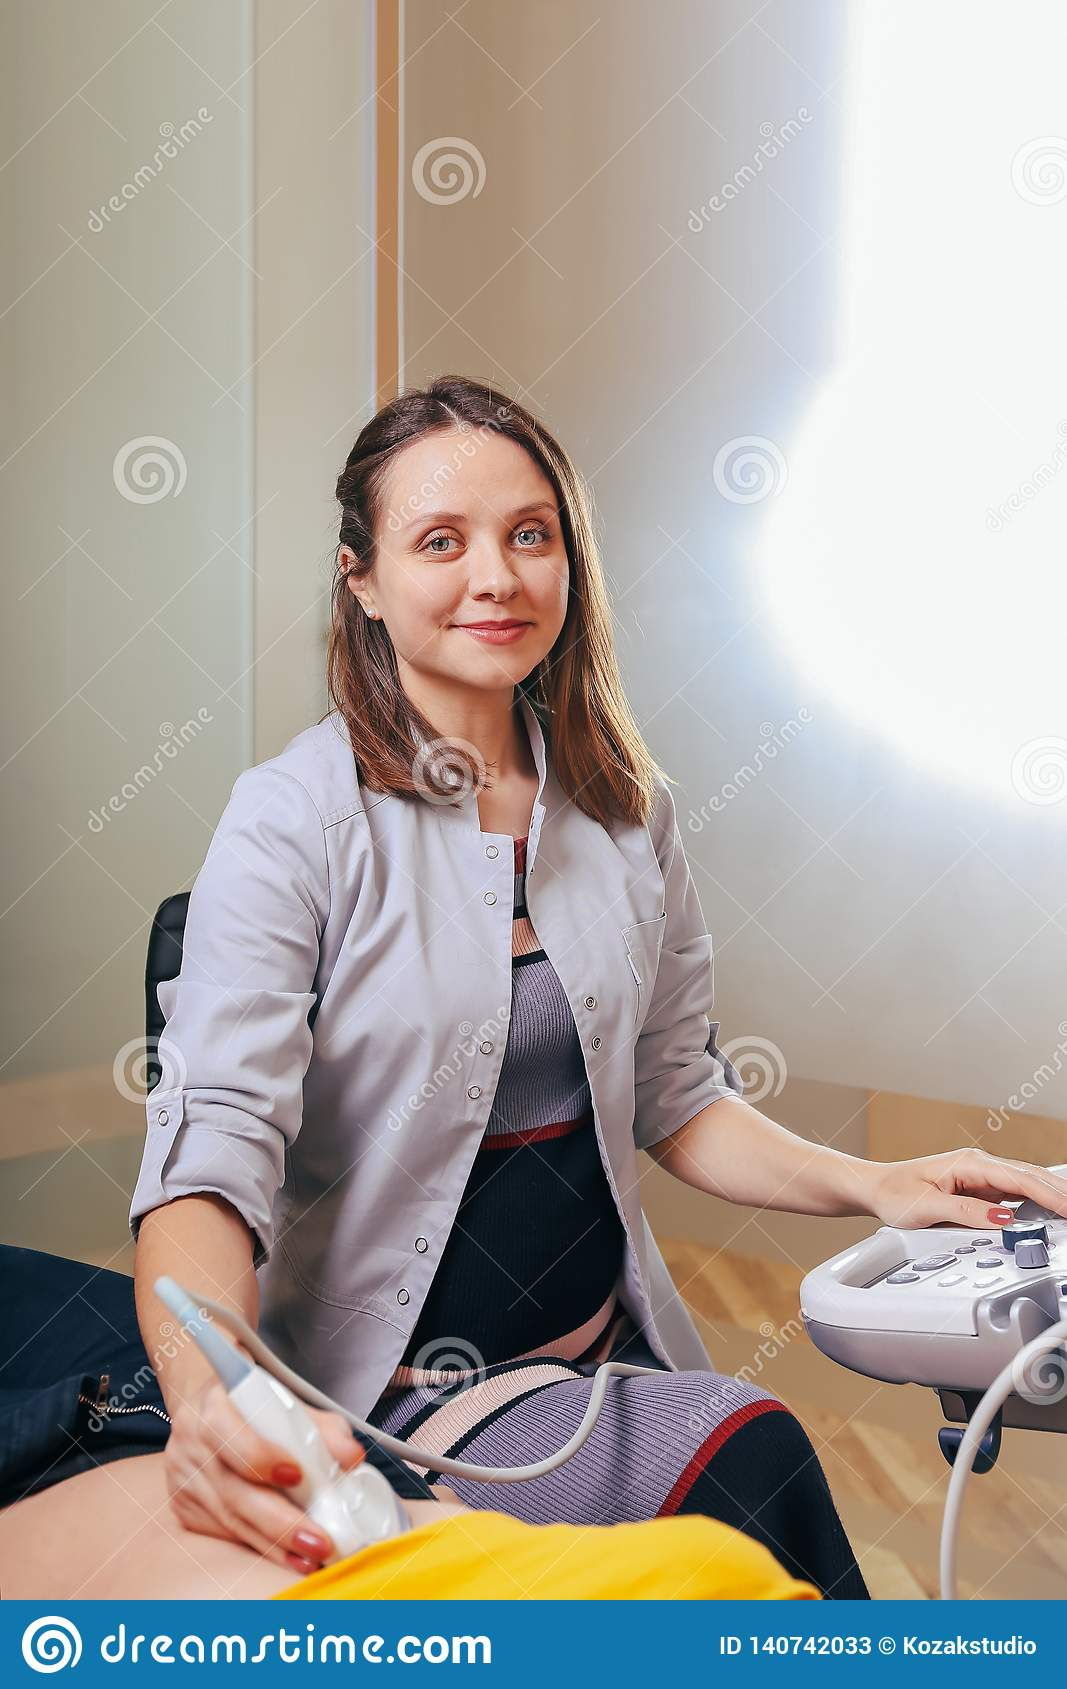 Doctor makes the patient women abdominal ultrasound. Ultrasound Scanner in the hands of a doctor.